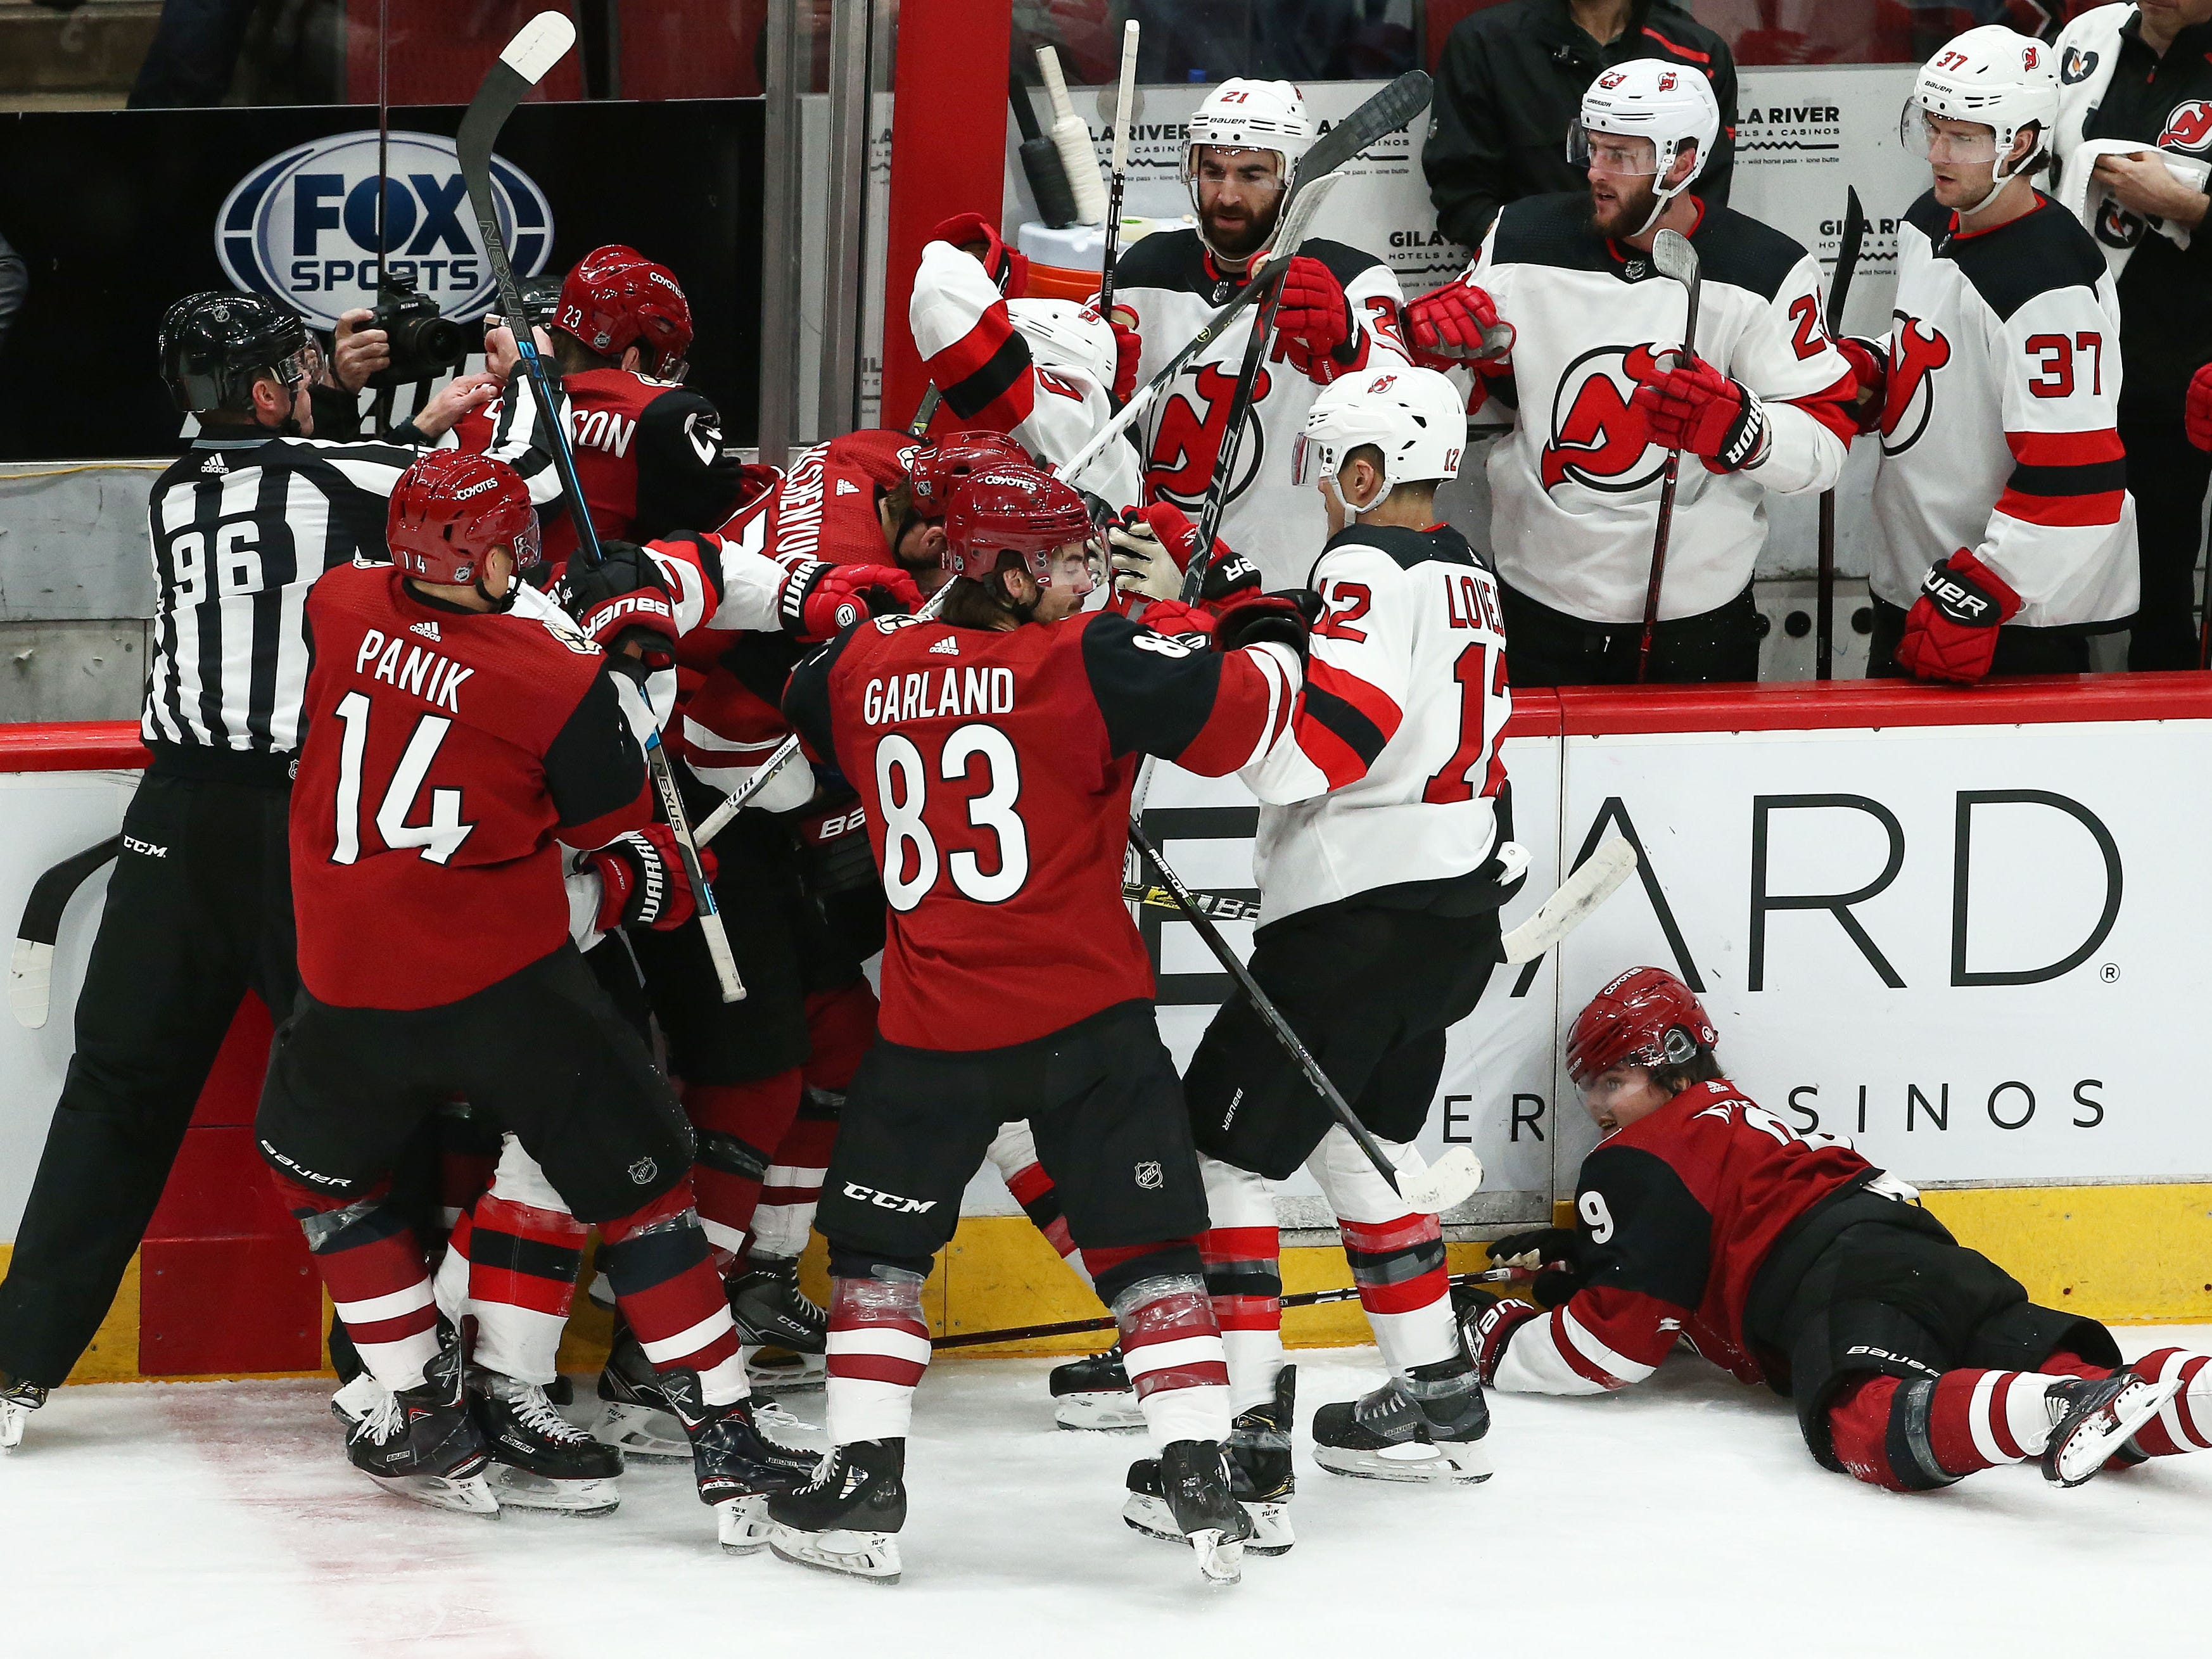 Arizona Coyotes' Clayton Keller is driven into the boards which started a fight with New Jersey Devils in the 1st period on Jan. 4 at Gila River Arena.